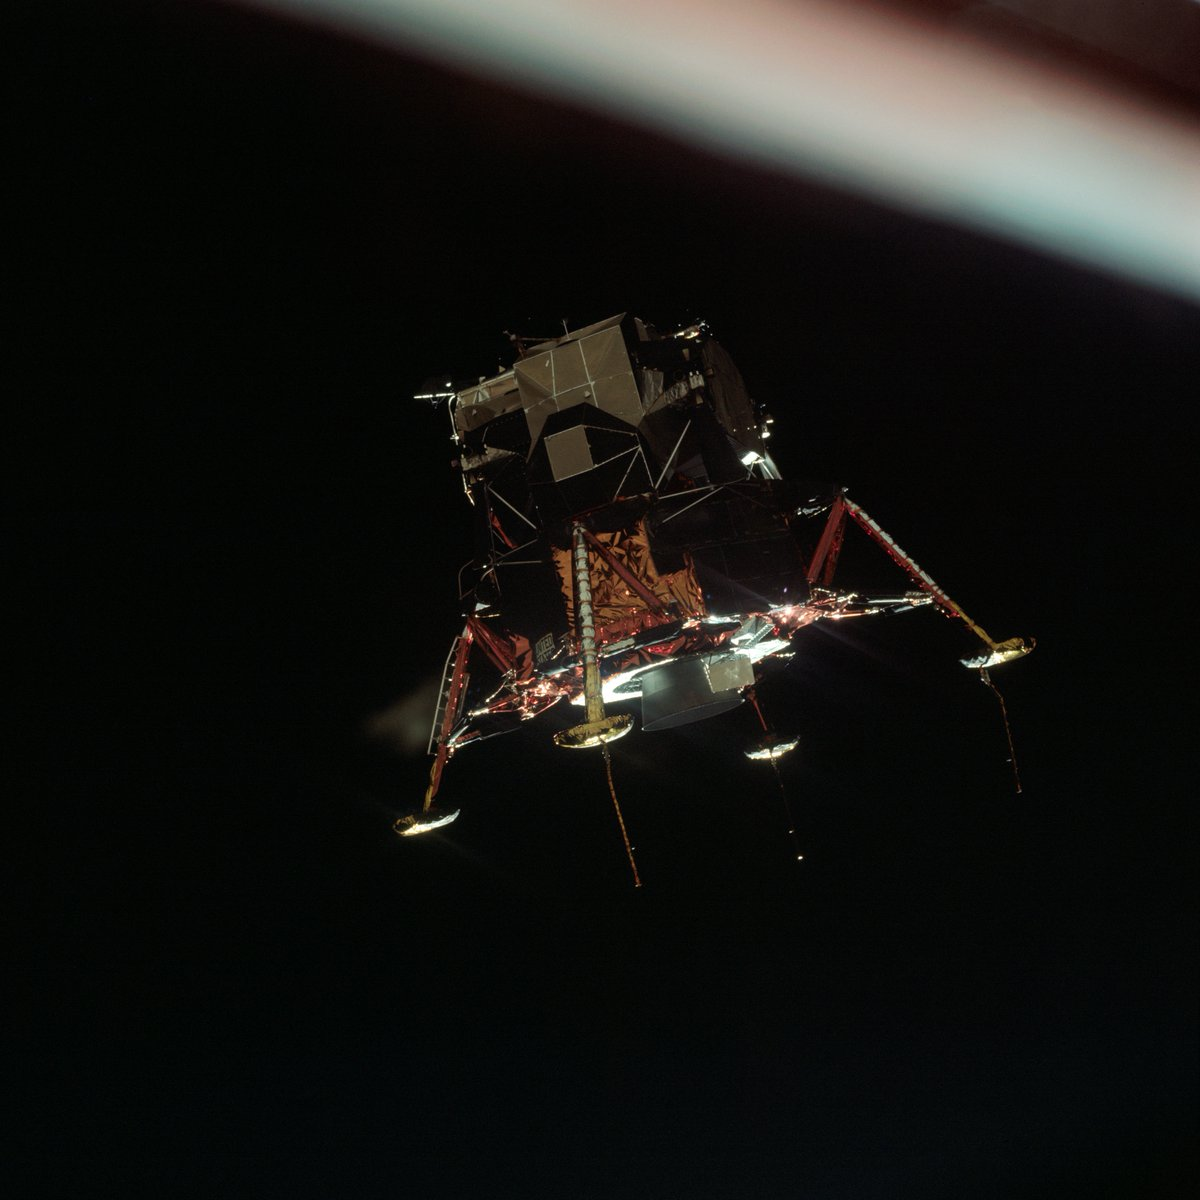 On their way to the moon! This image was taken during the separation of the Lunar Module (LM) and the Command/Service Module (CSM) for the Apollo 11 Mission. Inside the LM were astronauts Neil Armstrong and Buzz Aldrin, while astronaut Michael Collins remained with the CSM. https://t.co/foLoweIsGJ